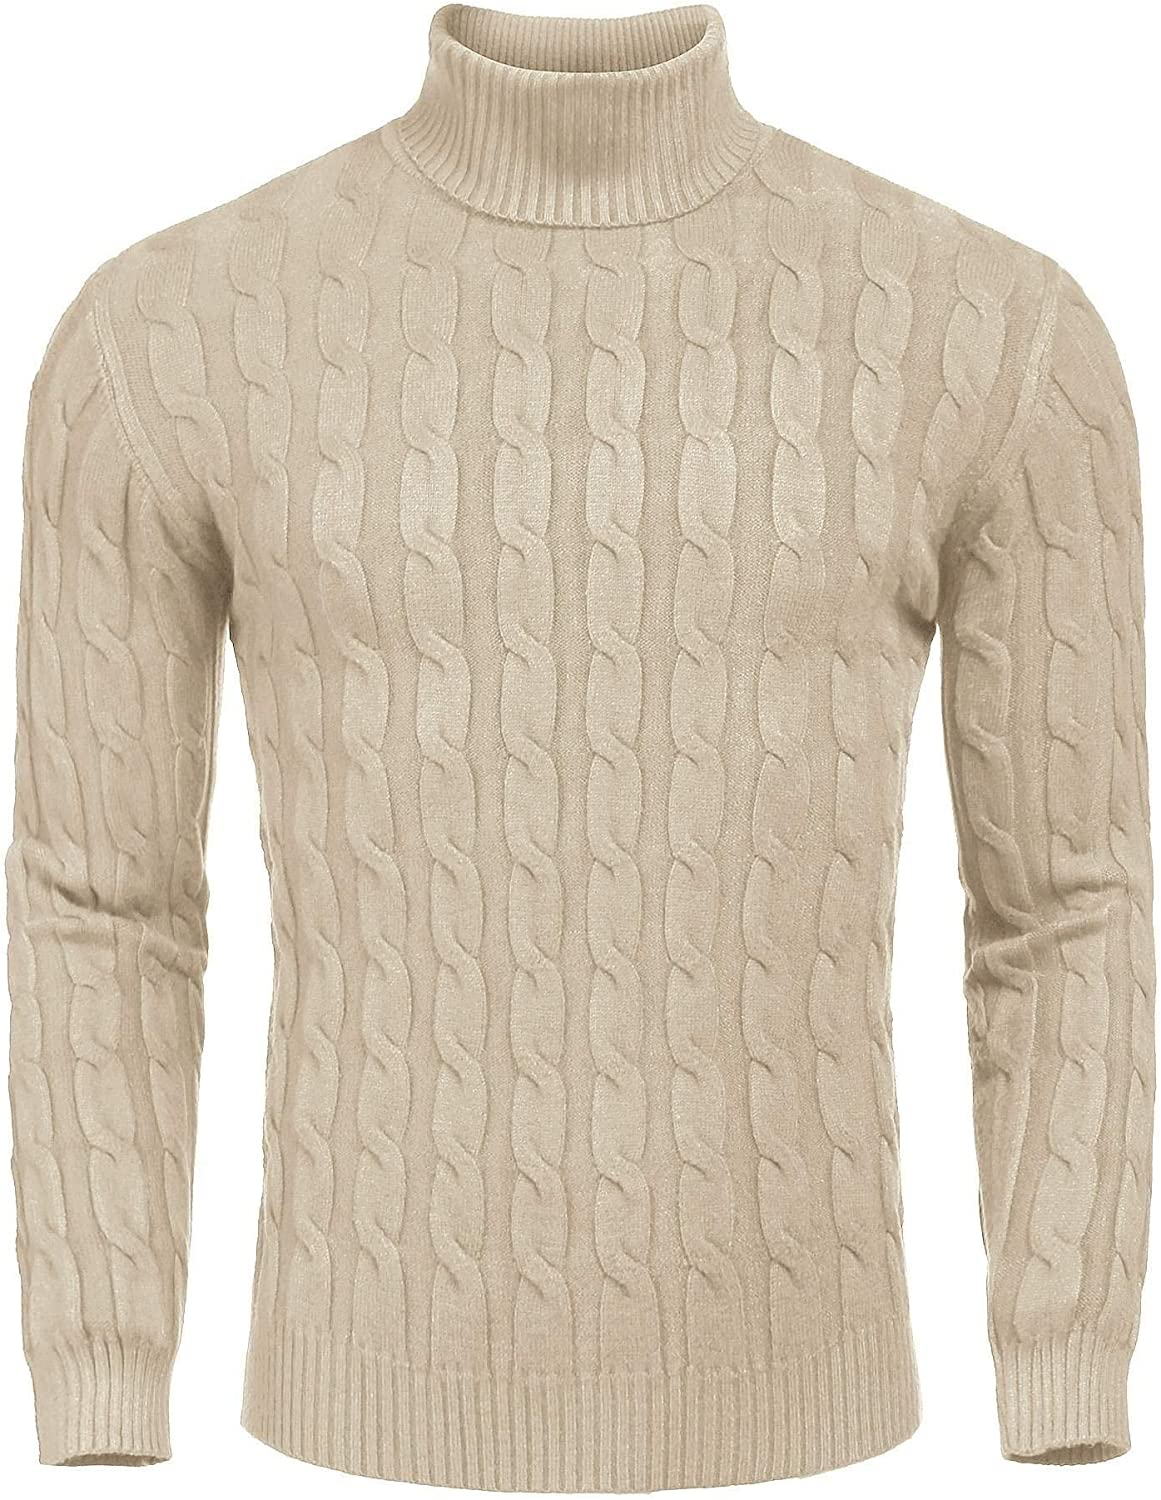 COOFANDY Mens Jumpers Turtleneck Slim Fit Twisted Knitted Pullover Jumpers